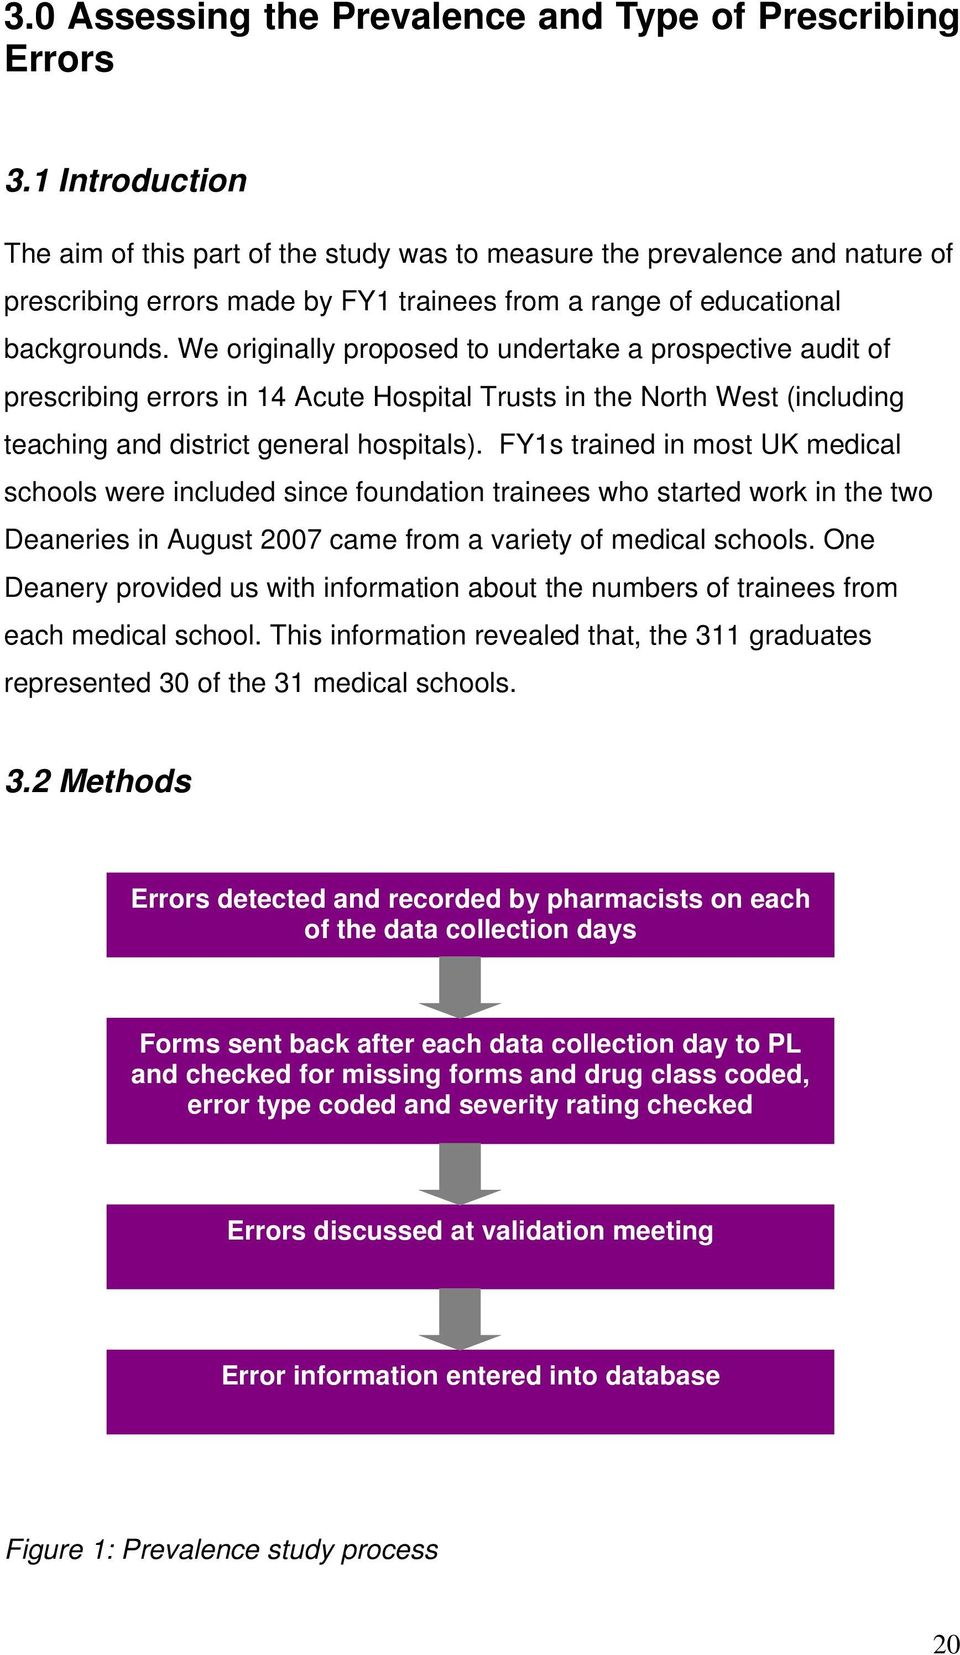 We originally proposed to undertake a prospective audit of prescribing errors in 14 Acute Hospital Trusts in the North West (including teaching and district general hospitals).